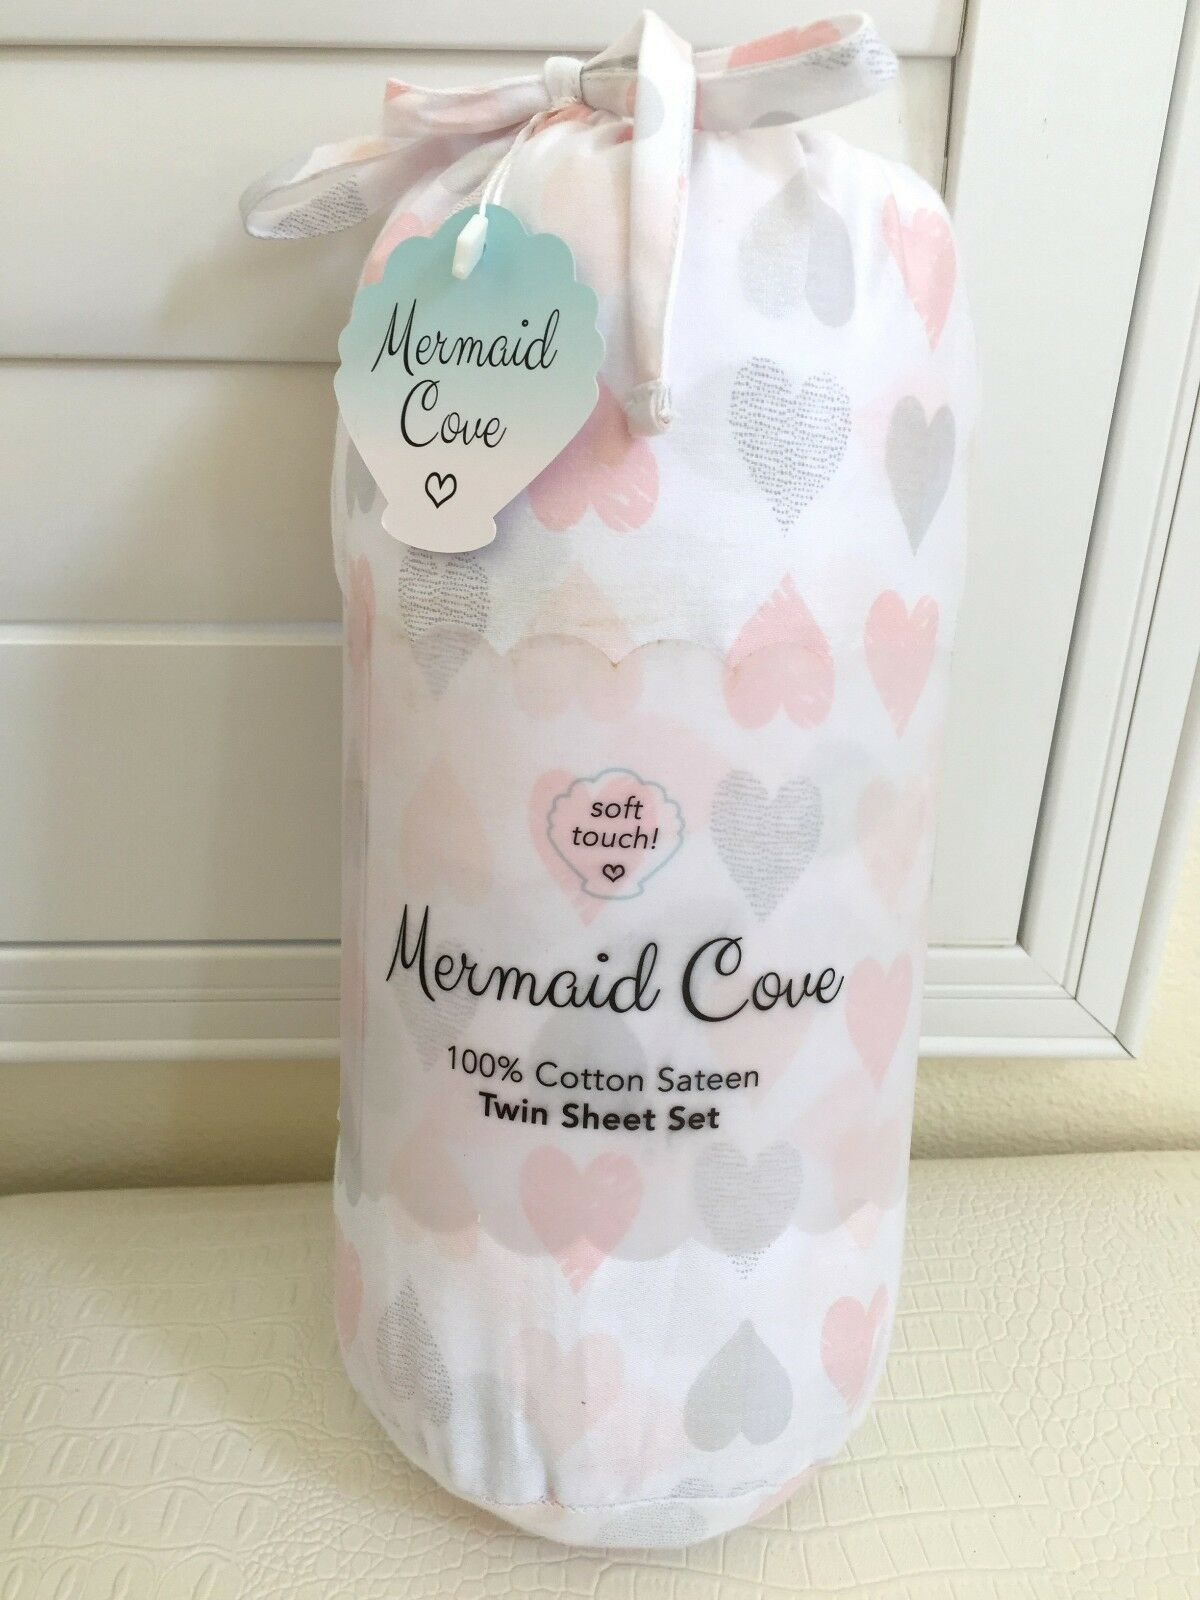 Mermaid Cove TWIN SHEET SET 3pc Luxury Bedding 100% Cotton Sateen Hearts NEW